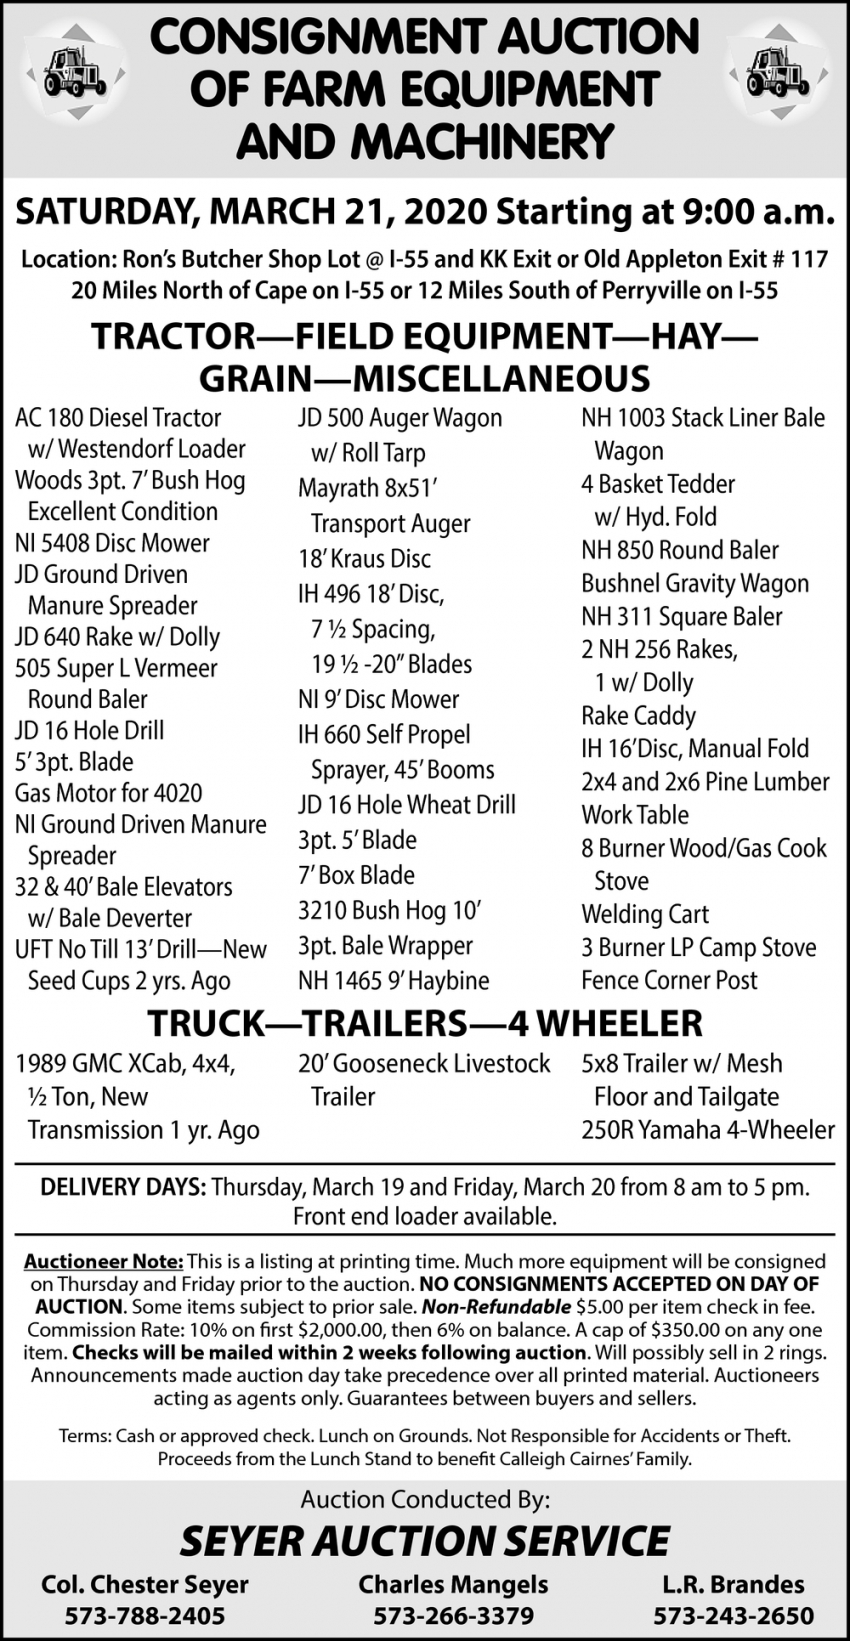 Consignment Auction of Farm Equipment and Machinery